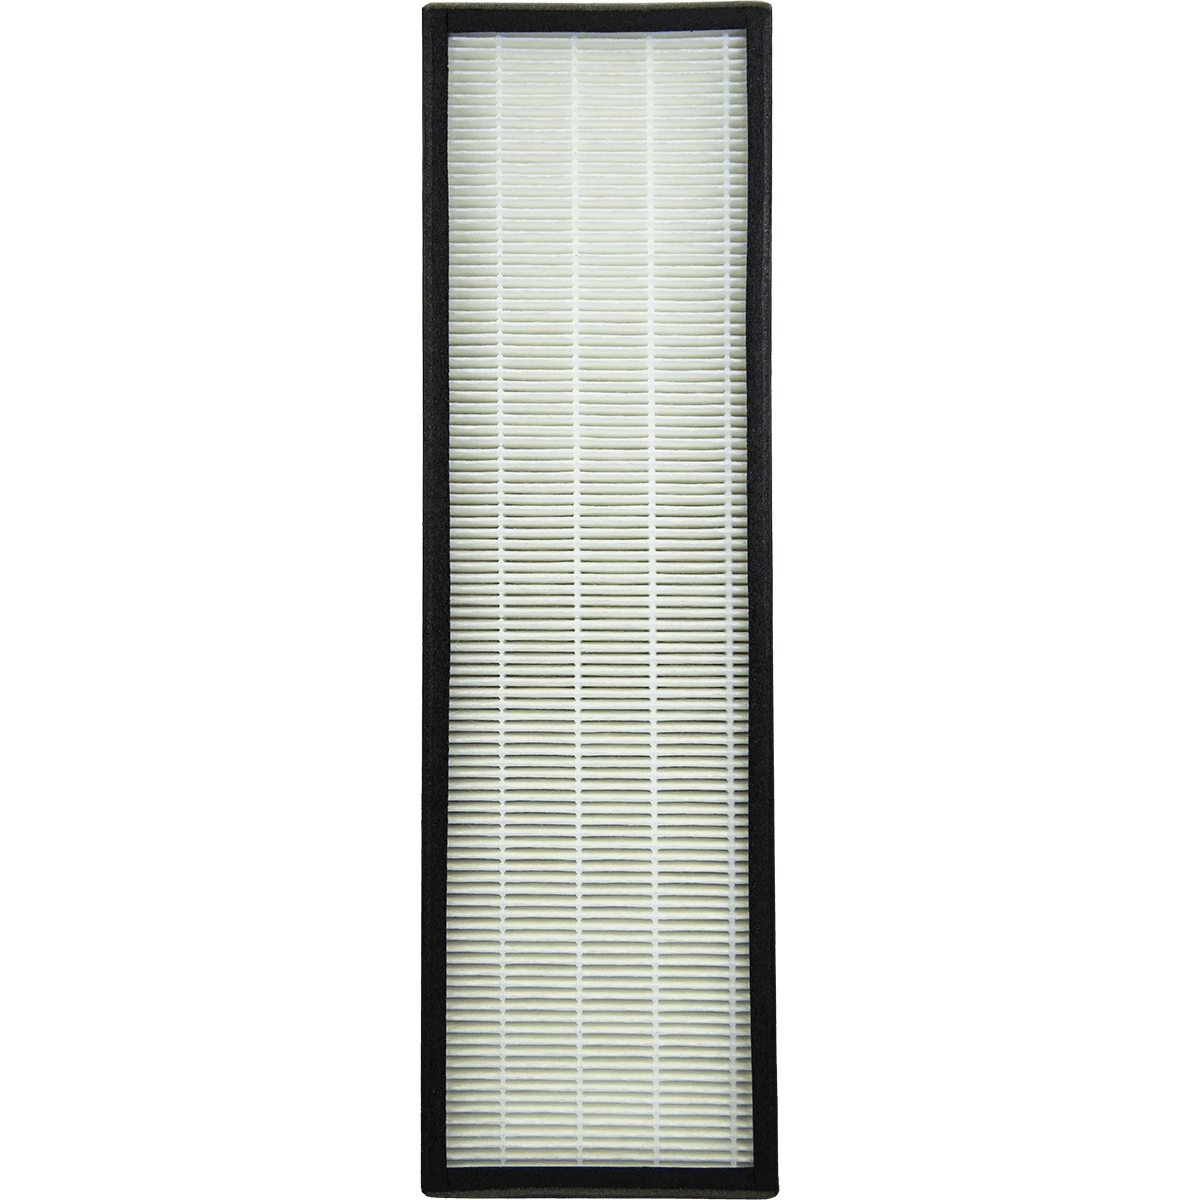 Filter-Monster Replacement Filter Comparable to Germ Guardian Filter B wh6627